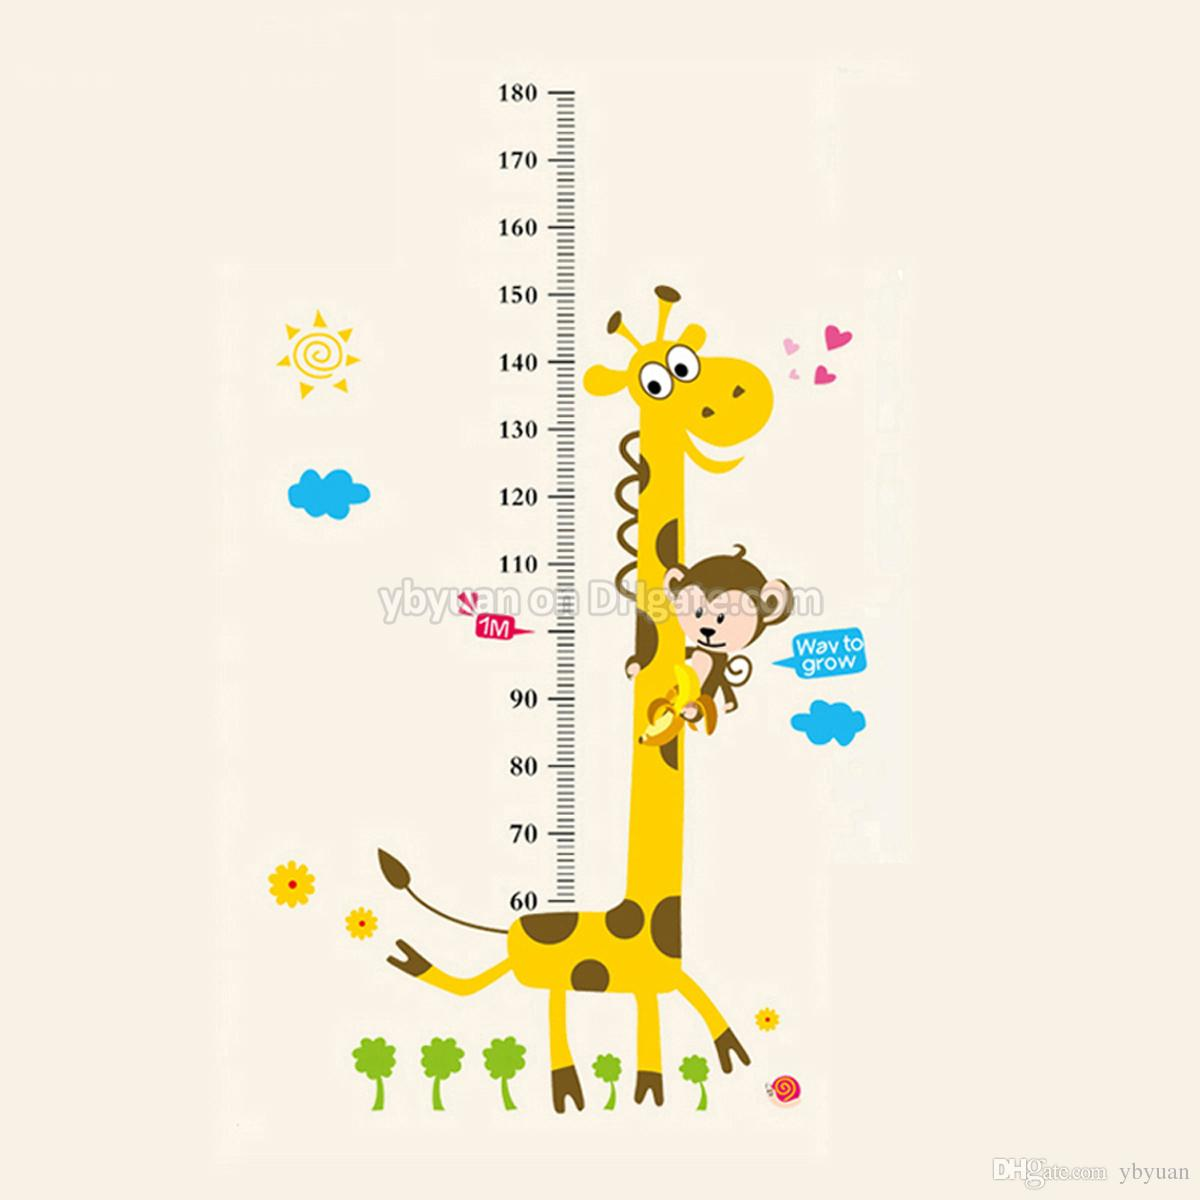 Removable pvc children wall stickers large cartoon giraffe height removable pvc children wall stickers large cartoon giraffe height growth chart decal for kids room decoration large wall sticker growth chart removable geenschuldenfo Image collections